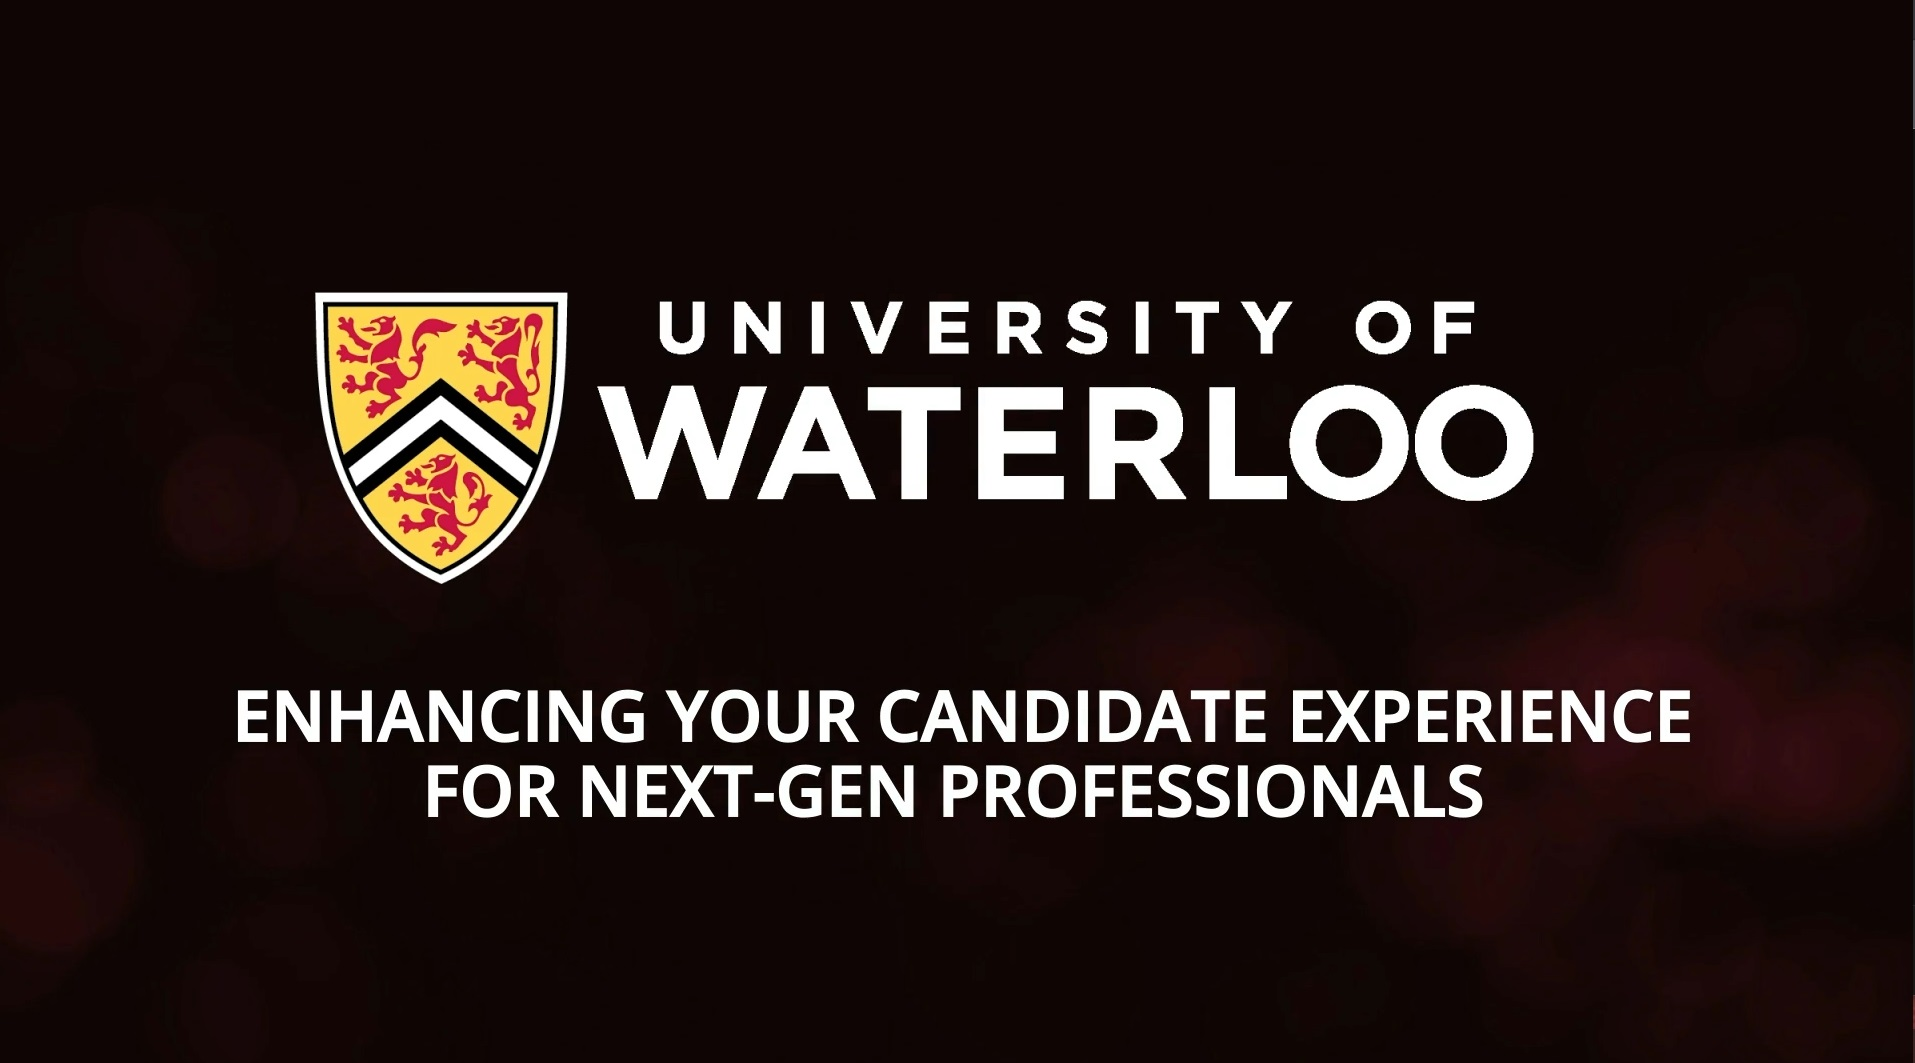 Enhancing your candidate experience for next-gen professionals